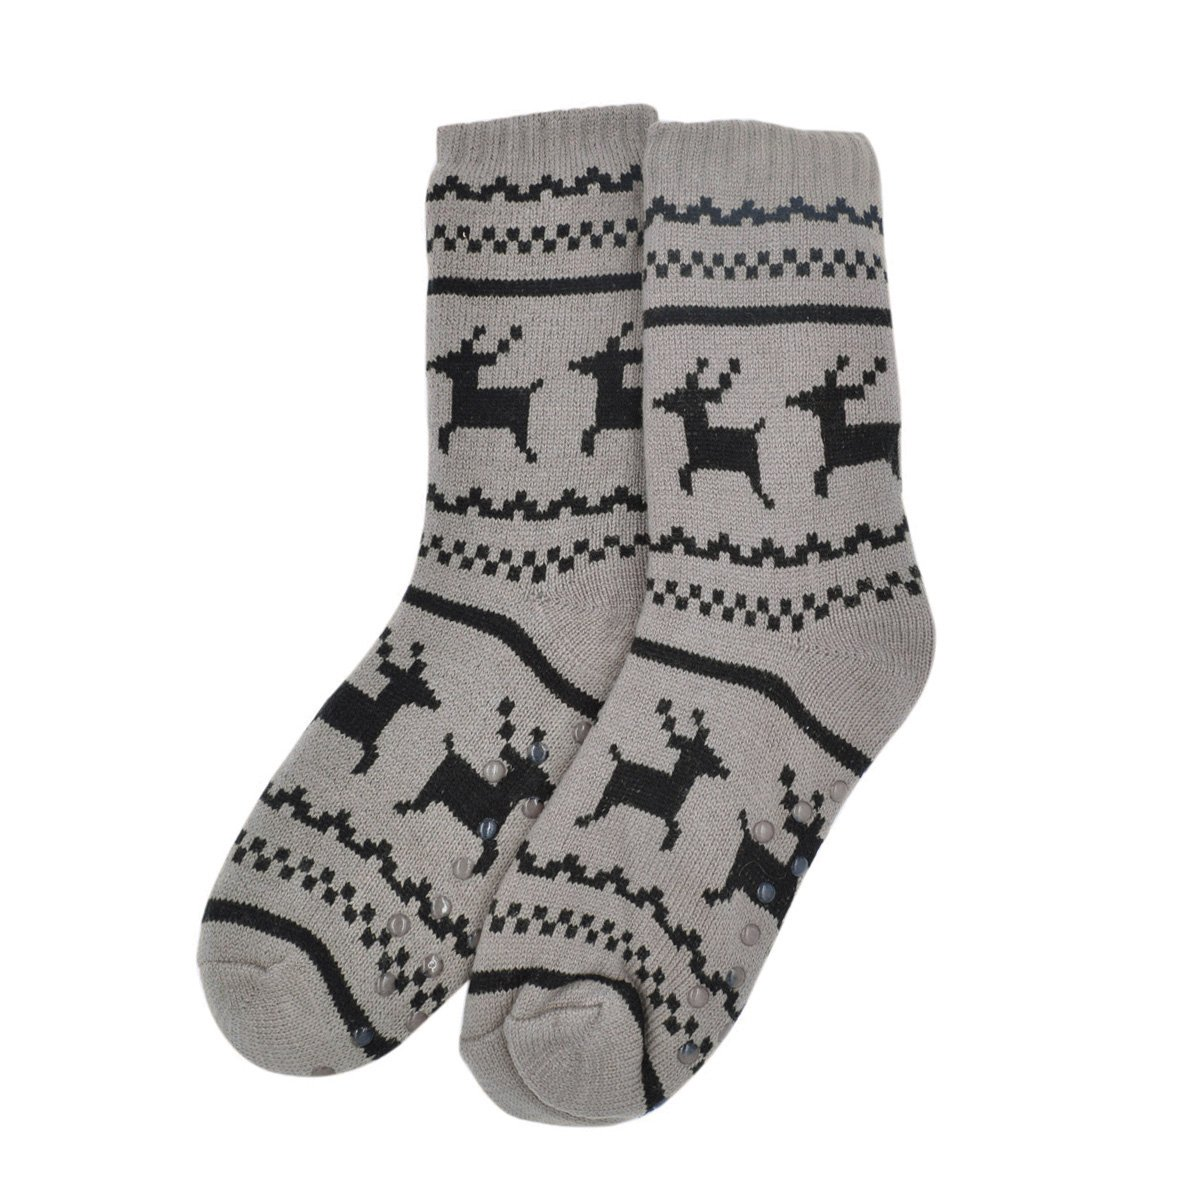 Extra Thick Reindeer Non-Skid Thermal Fleece-lined Knitted Plush Winter Socks Black SOG803-BLK